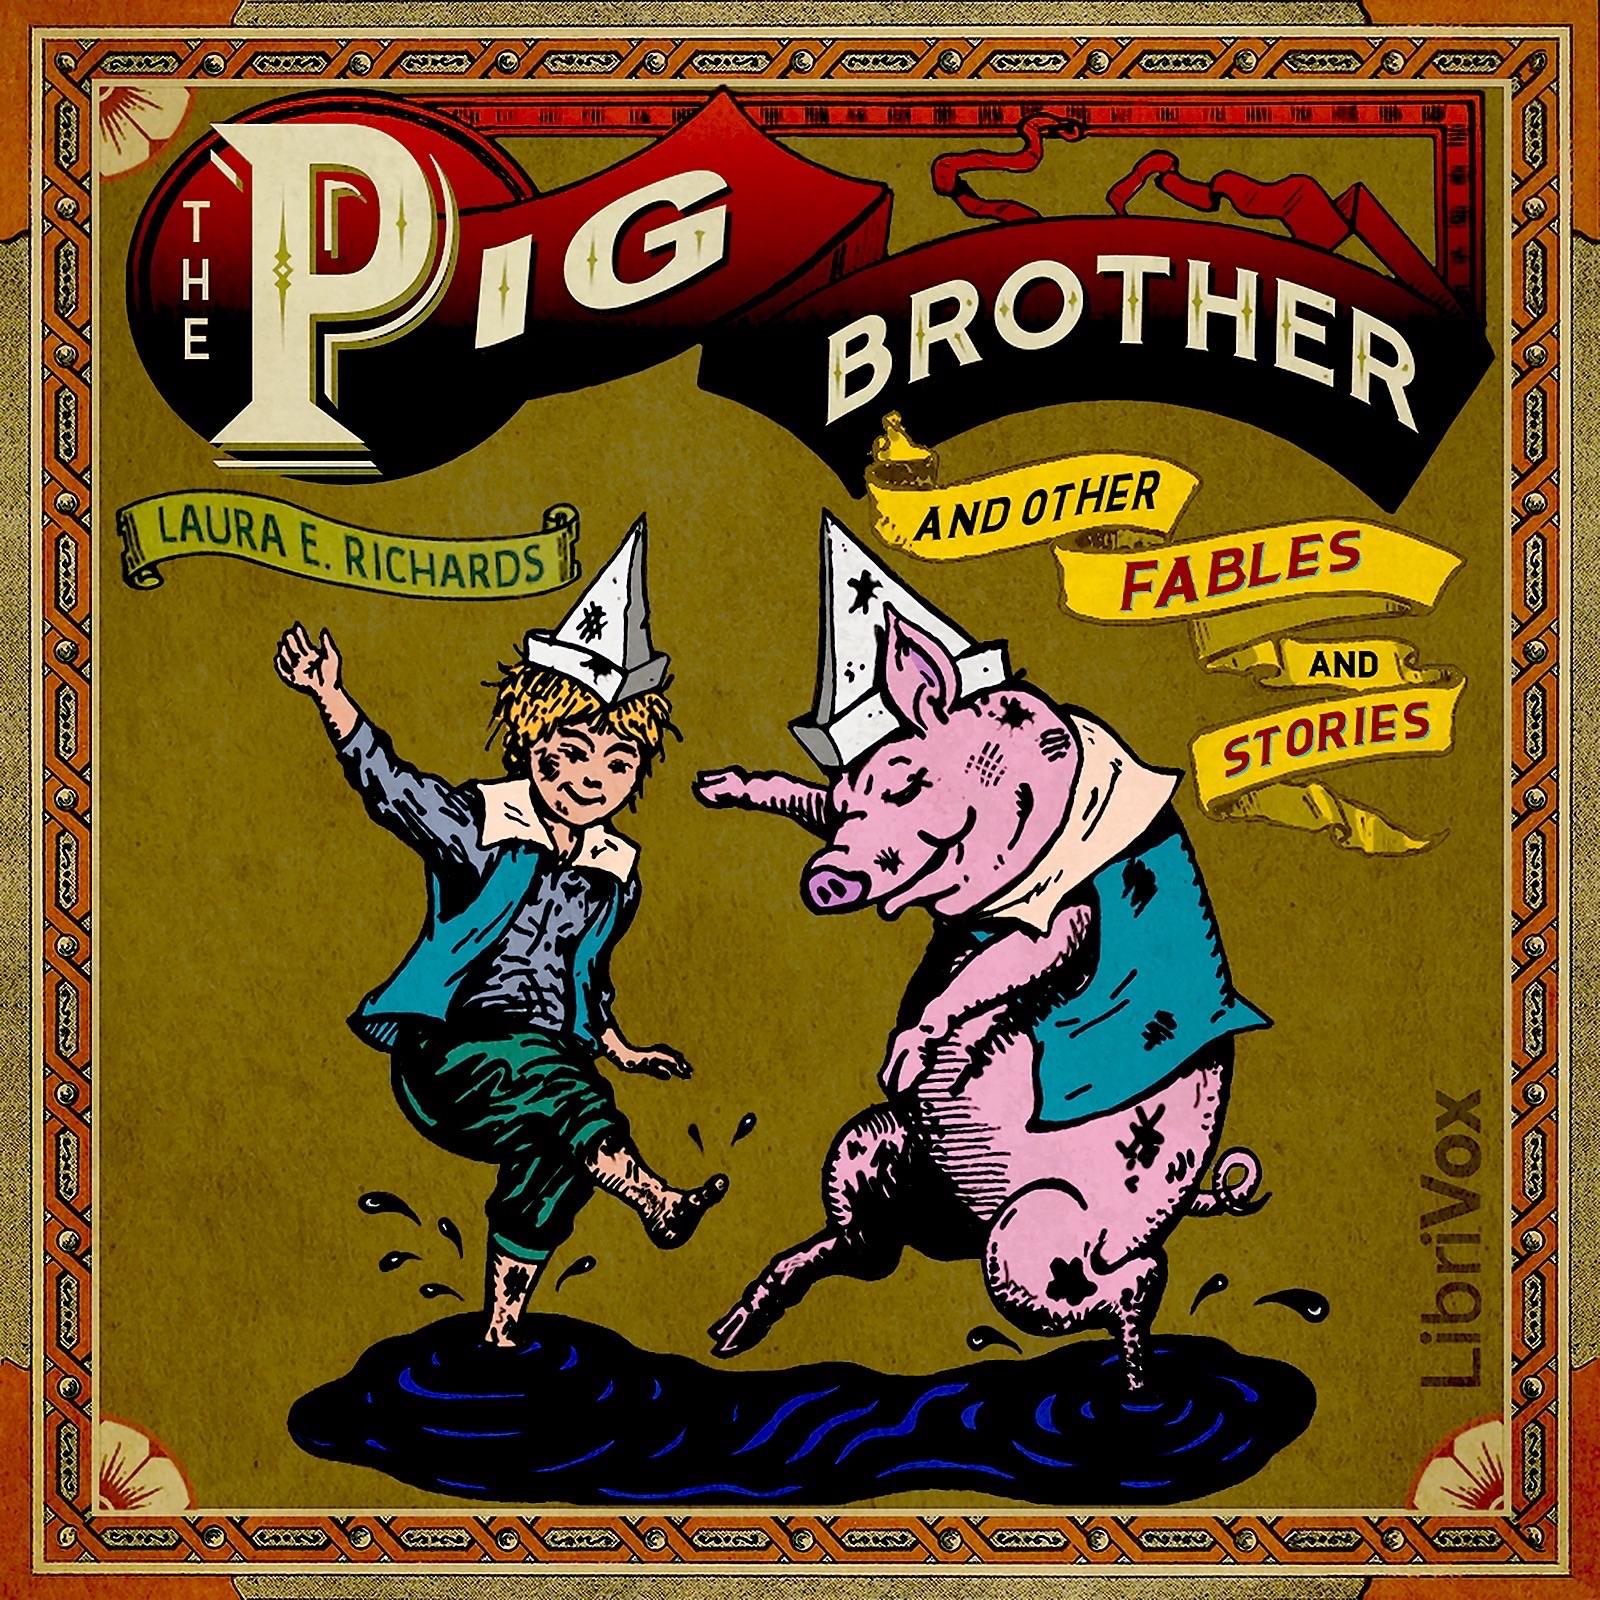 Pig Brother book cover9.jpg